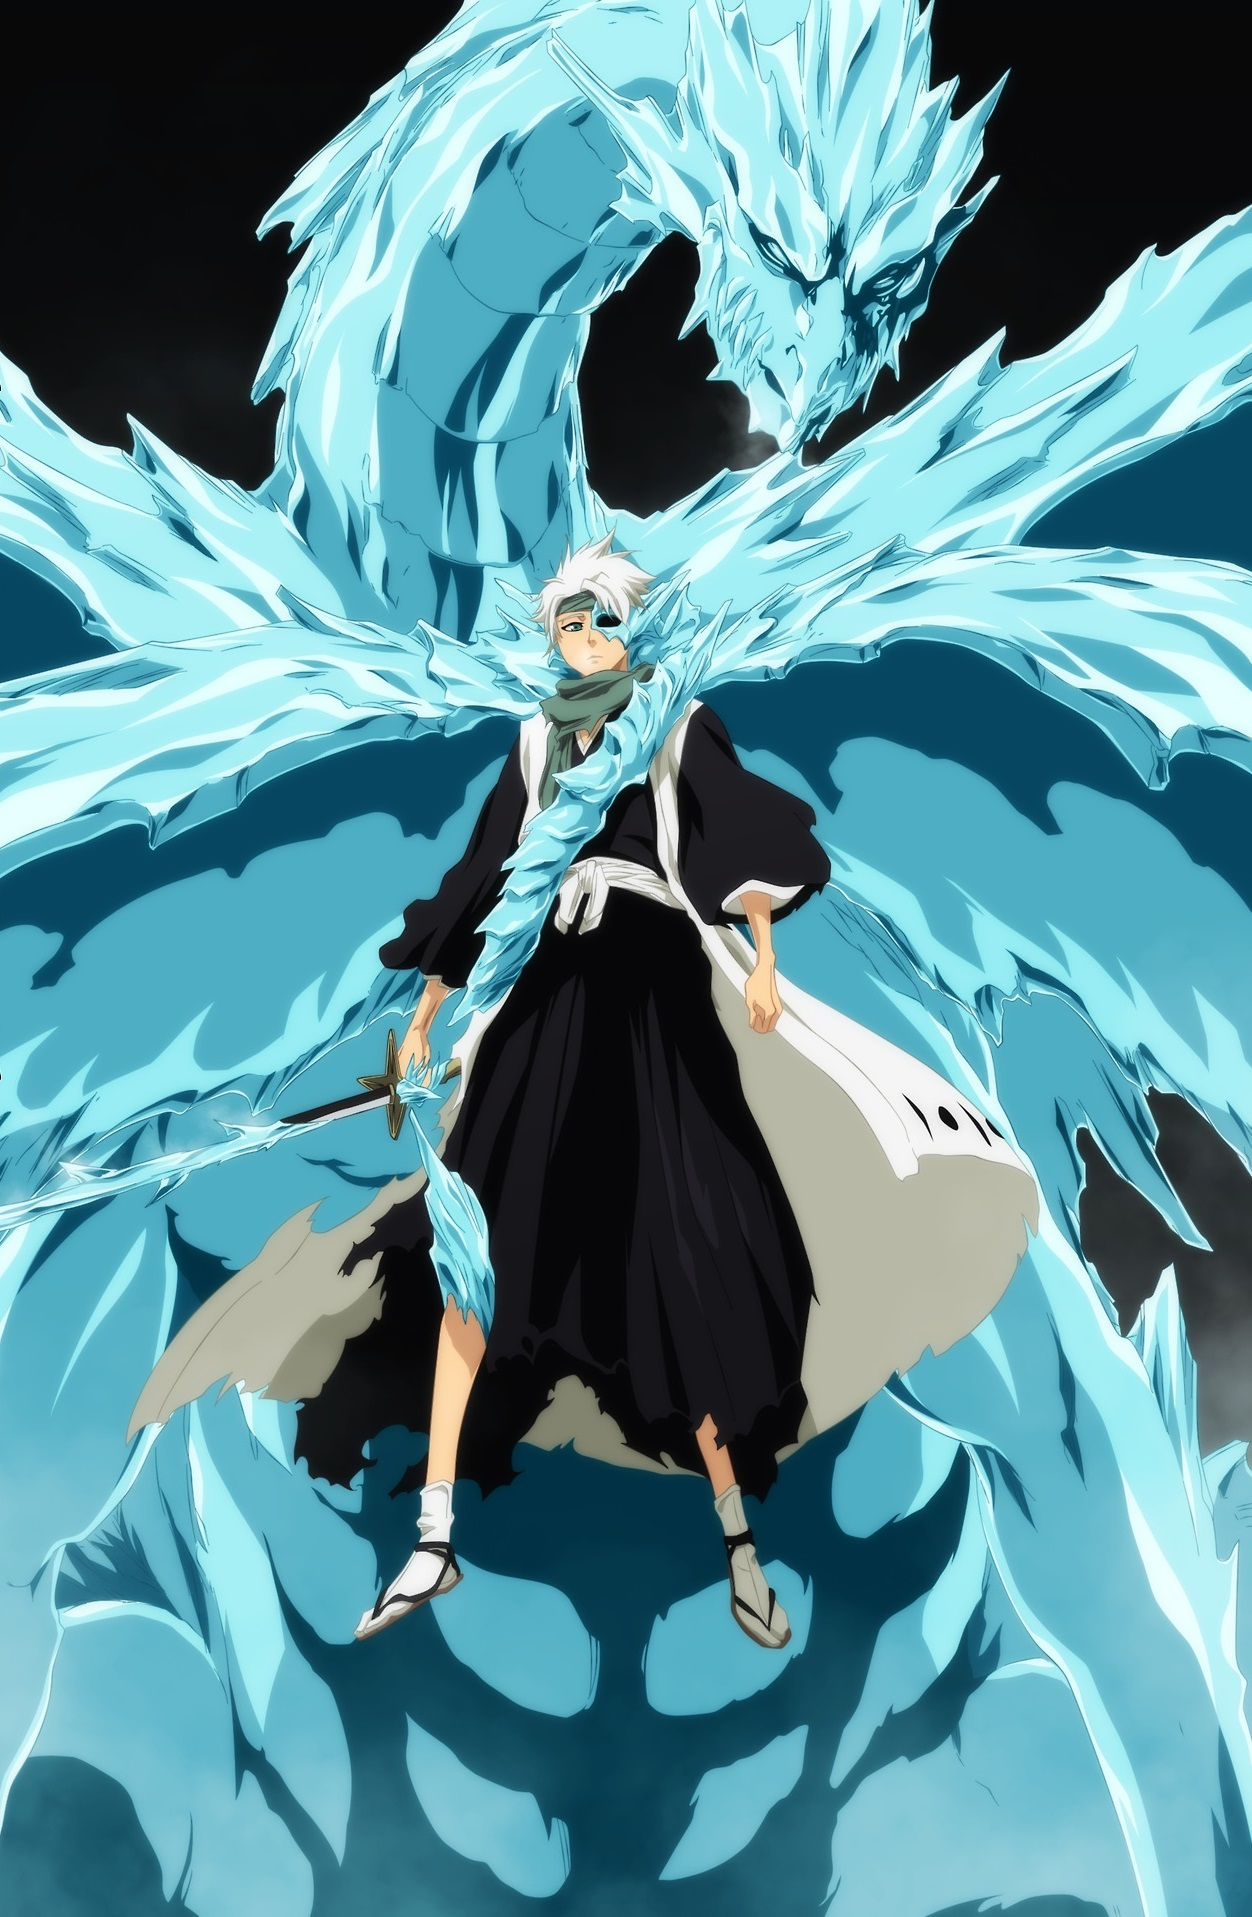 Magie du chasseur de dragon de glace wiki fairy tail fanon fandom powered by wikia - Embleme de fairy tail ...